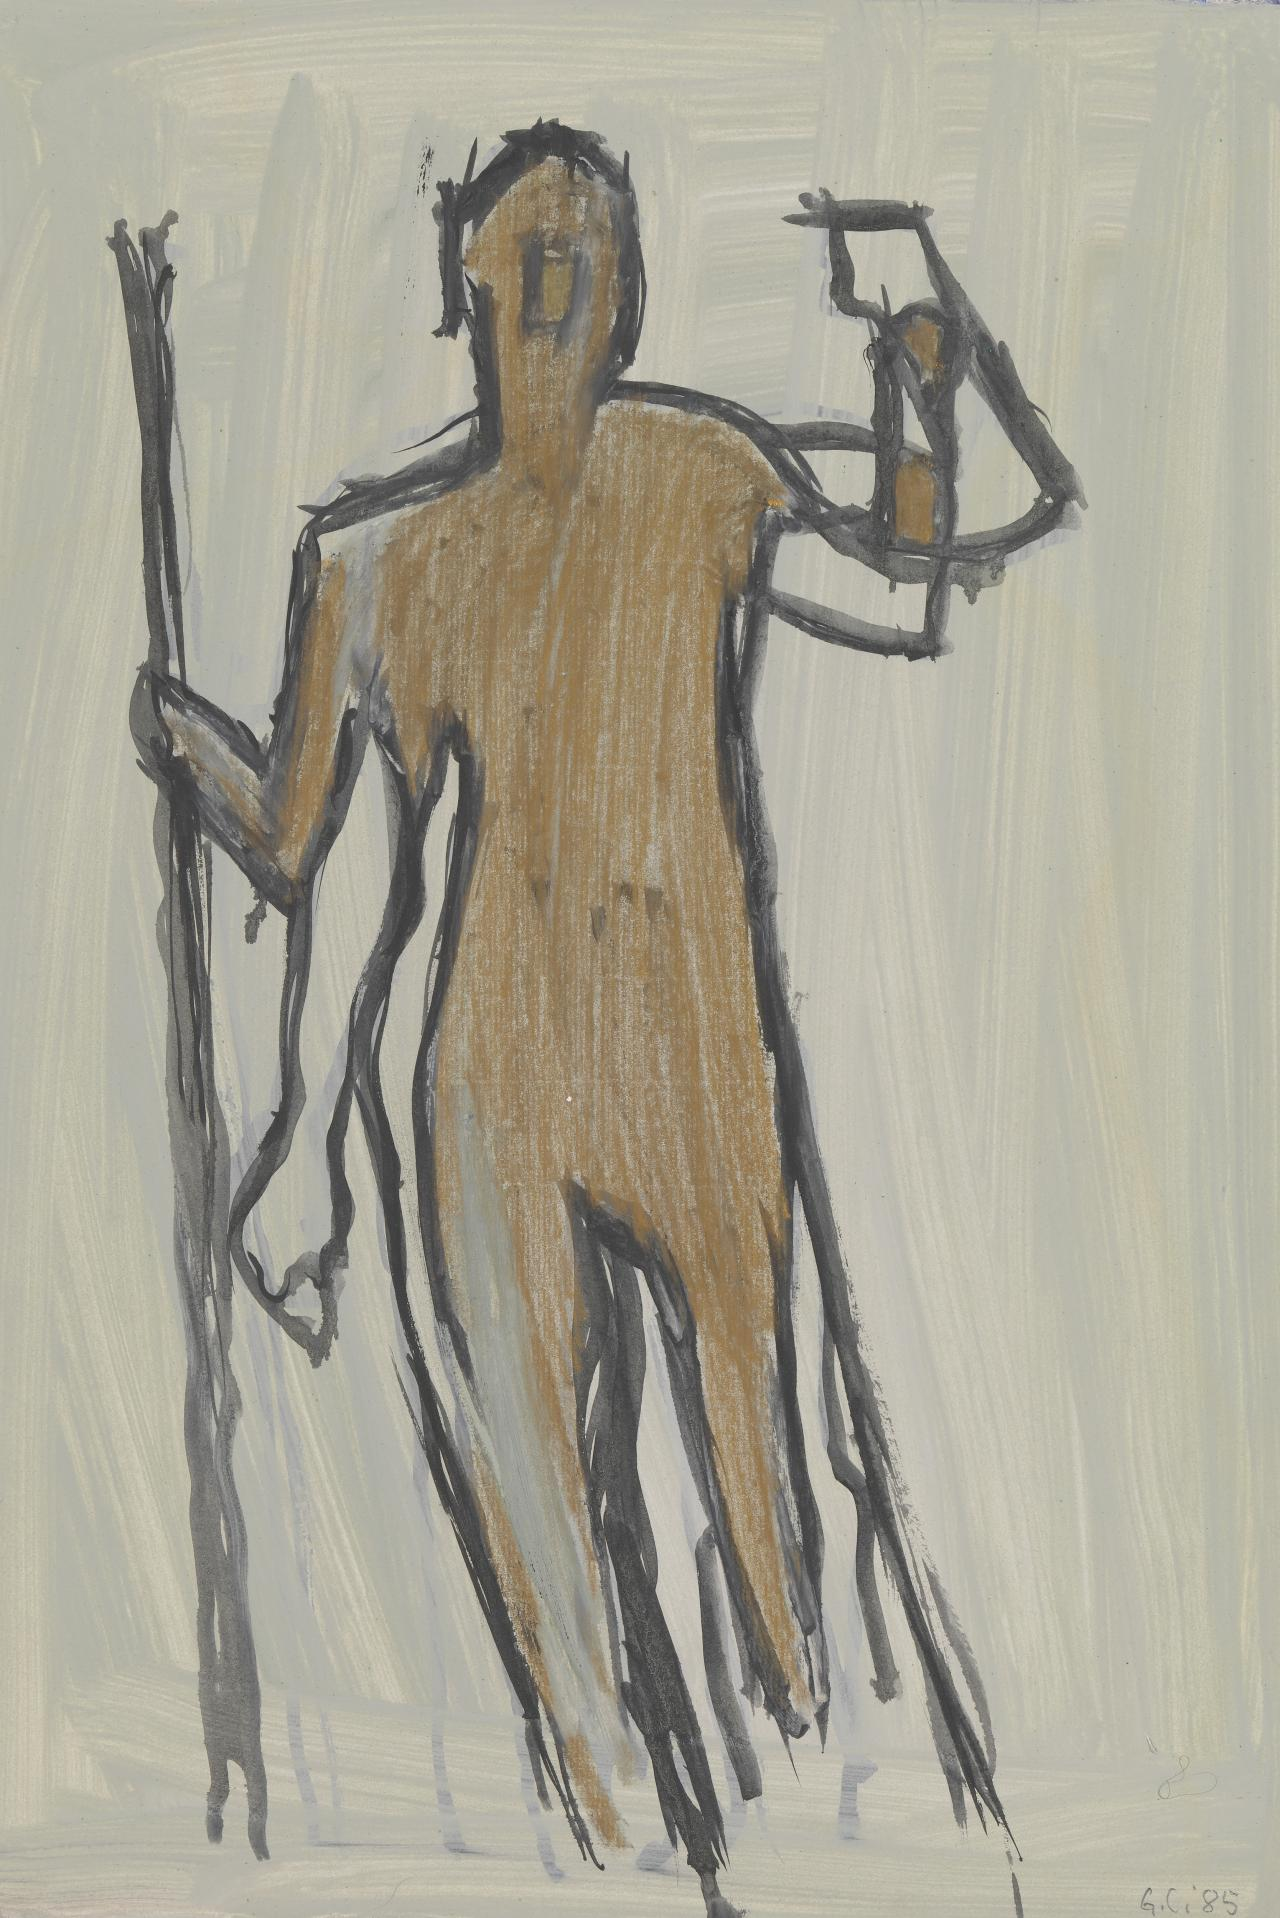 Untitled (silhouette of man)